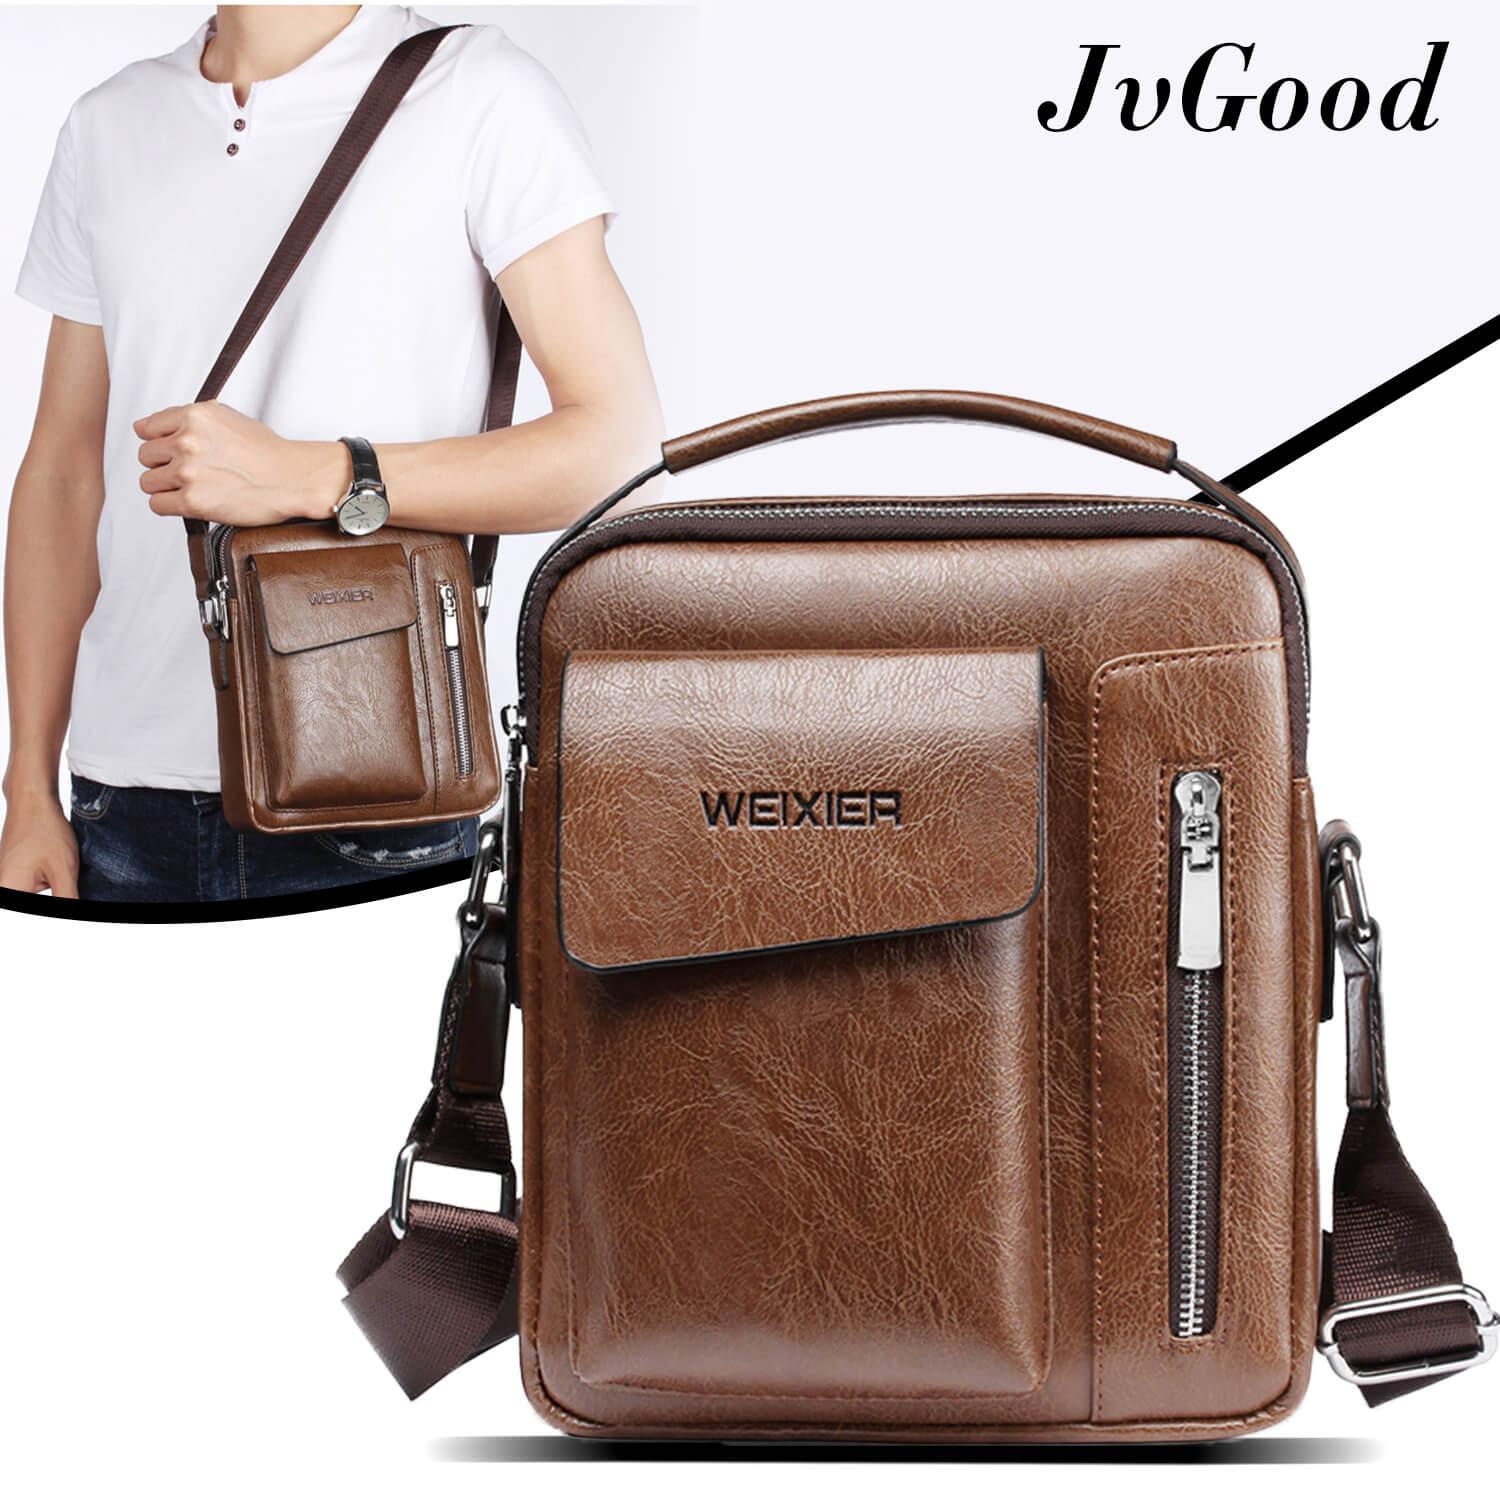 Malaysia Jvgood Messenger Bag Pu Leather Sling Shoulder Male Travel Casual Crossbody Bags Small Flap Handbags